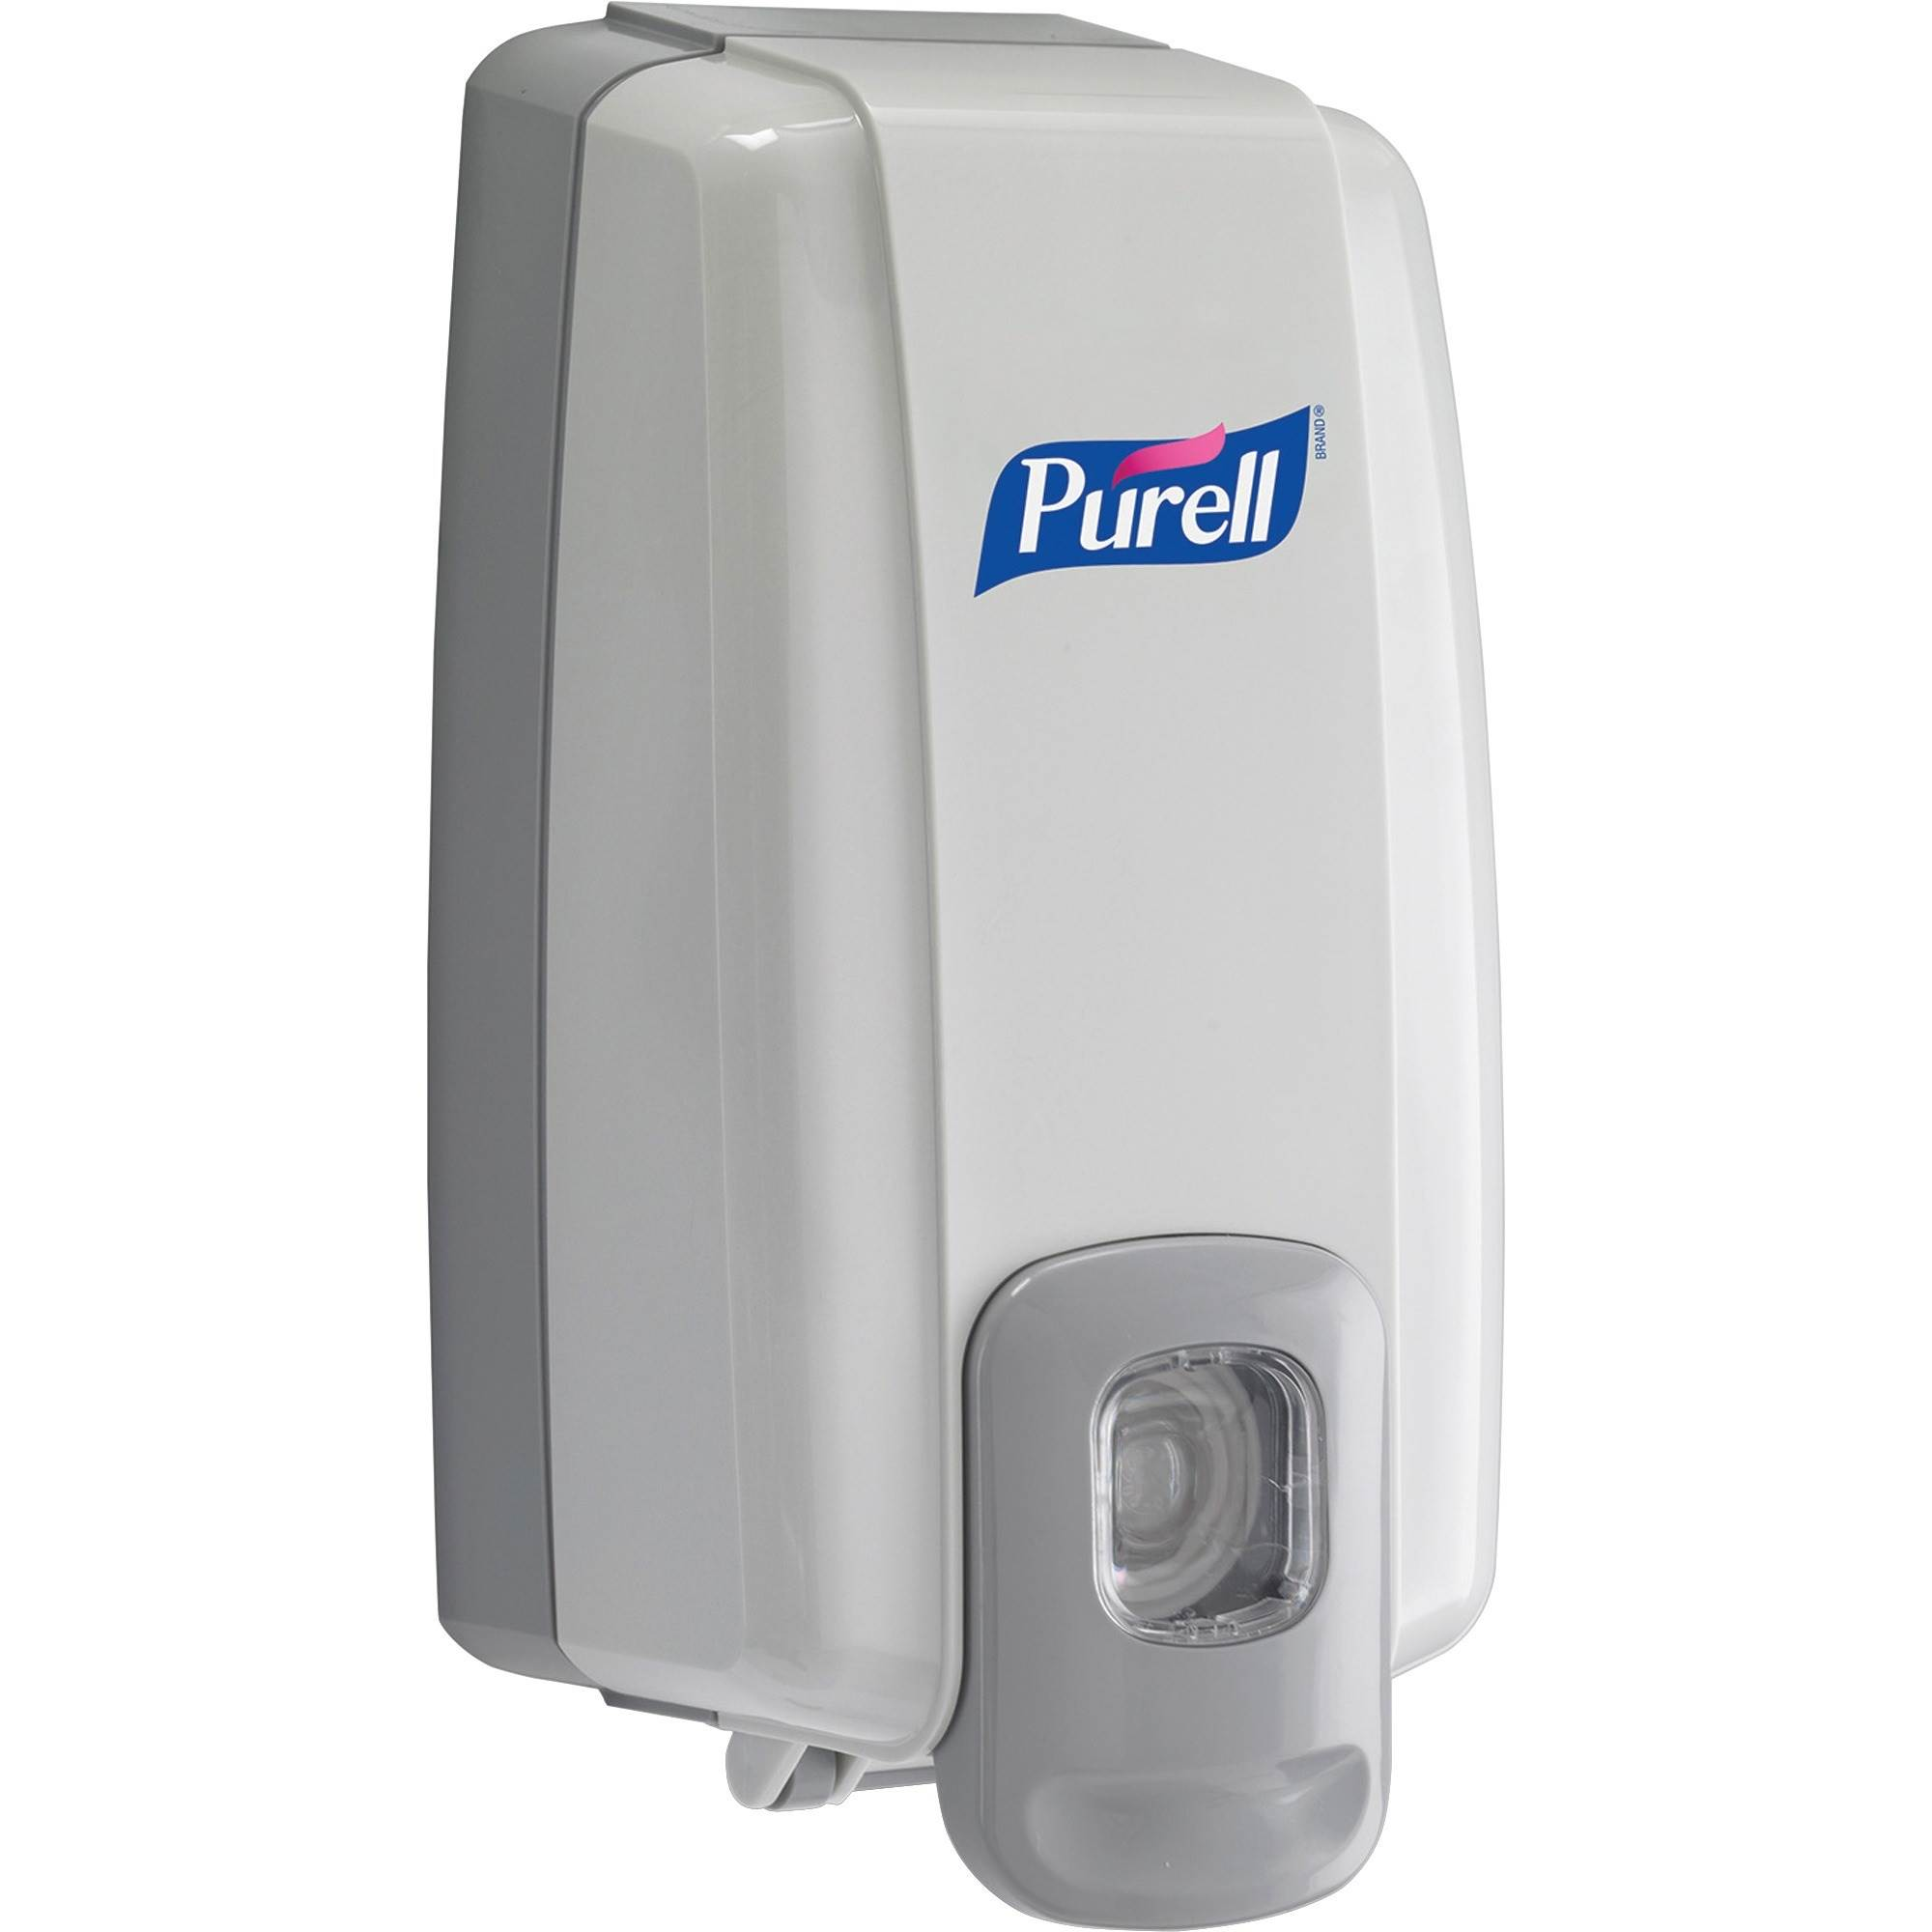 Purell Ltx Or Tfx Table Top Dispenser Stand 1ea 2426 Ds